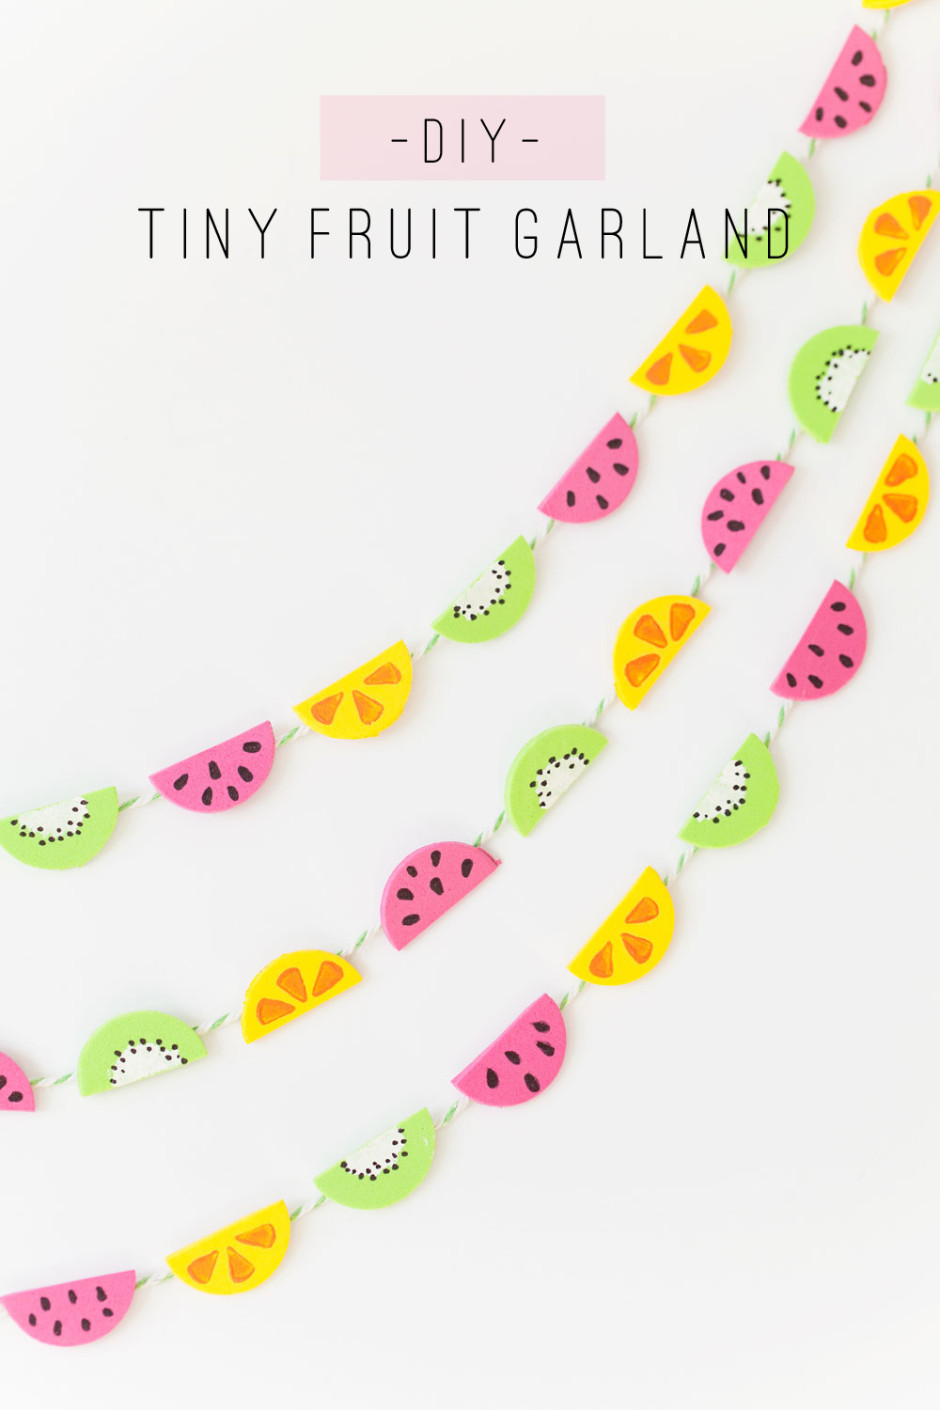 Tell-Love-and-Chocolate---This-tiny-fruit-garland-is-so-cute-and-easy-to-make,-check-out-the-DIY